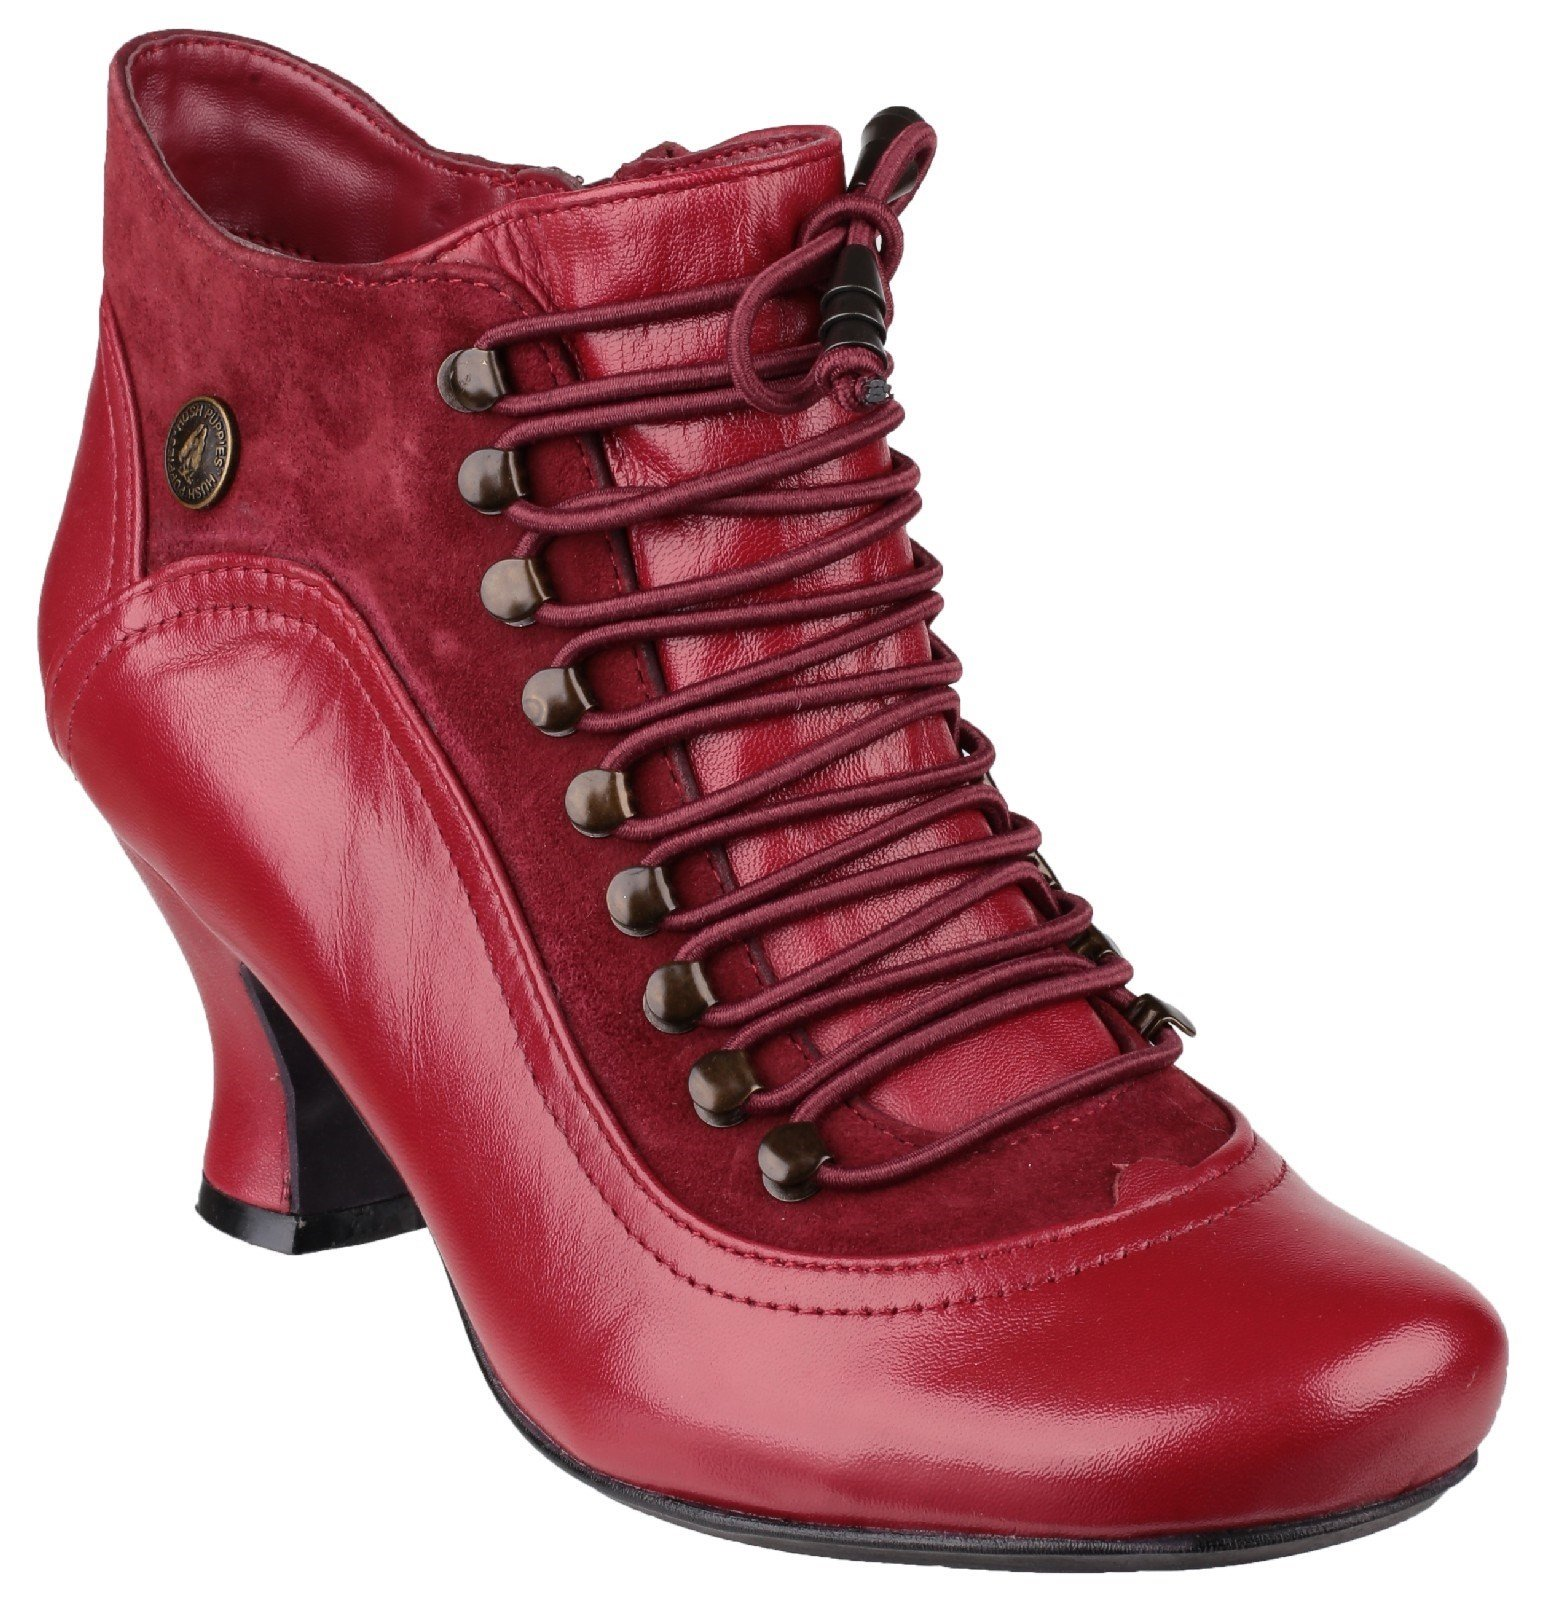 Hush Puppies Women's Vivianna Lace Up Heeled Boot Various Colours 24077 - Red 3